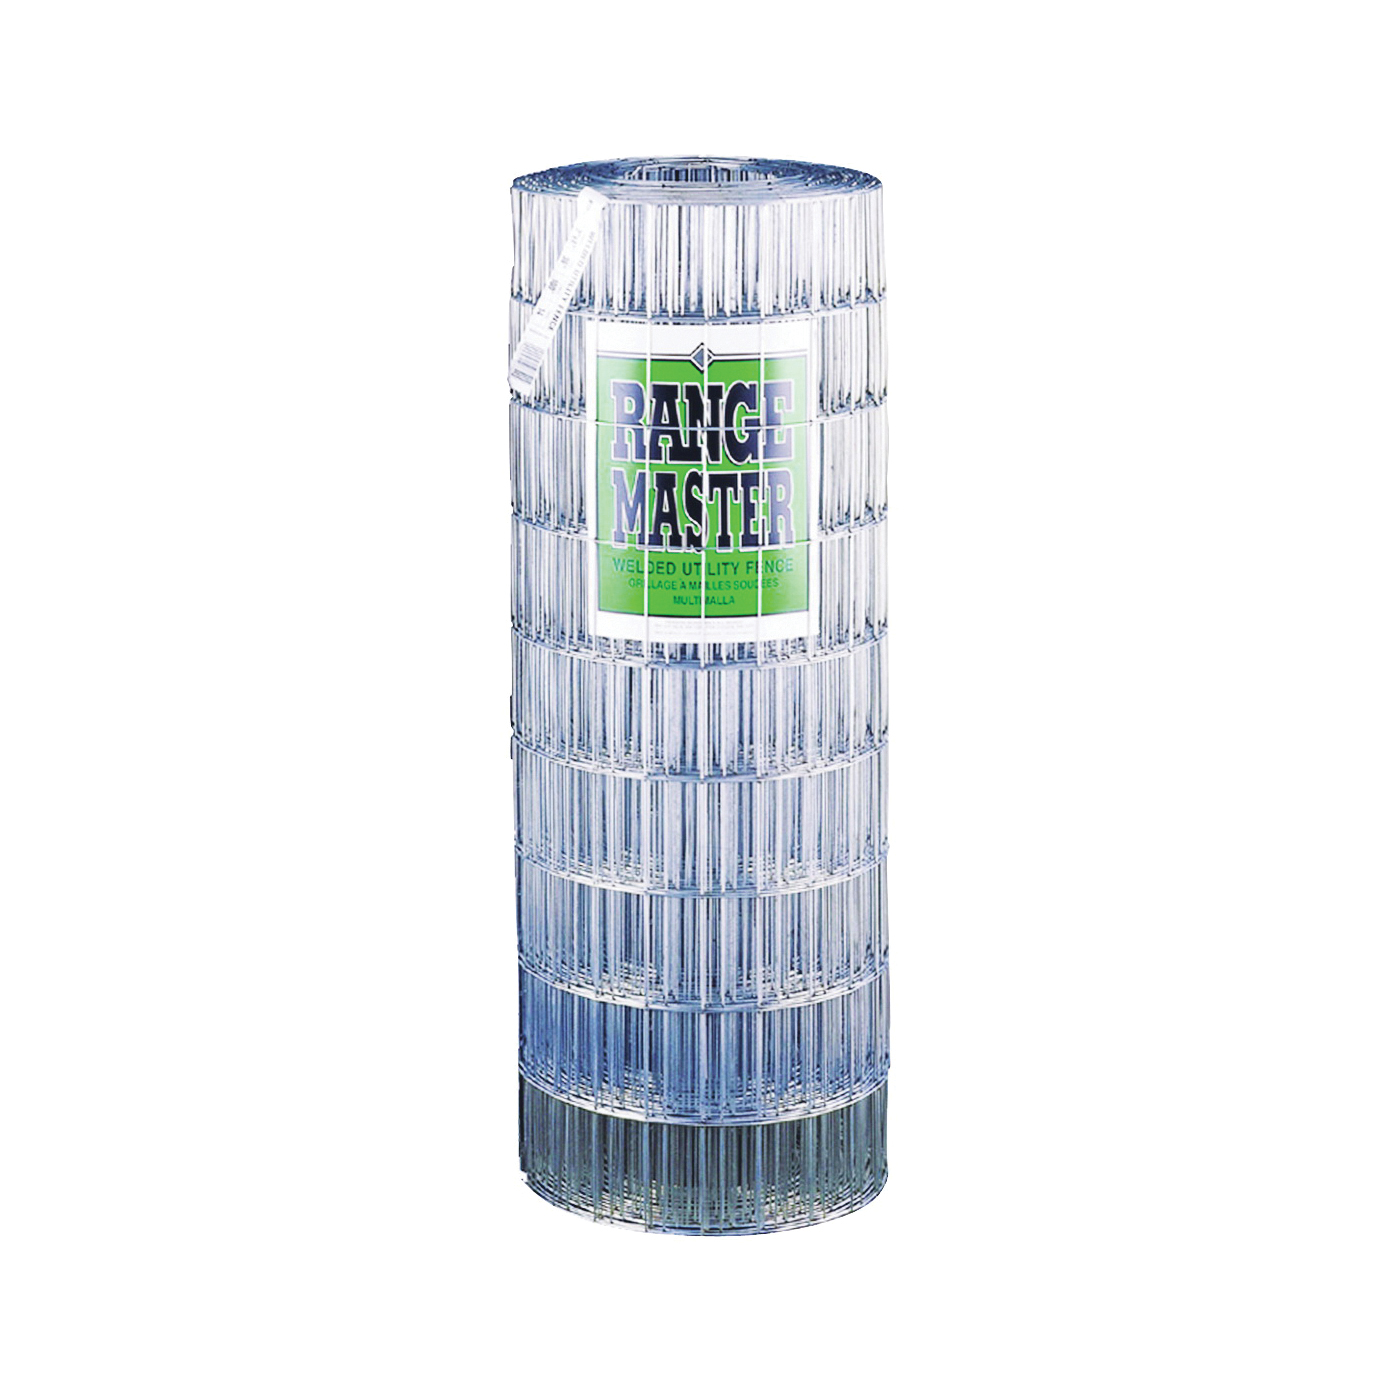 Picture of Jackson Wire 10 01 41 14 Welded Wire Fence, 100 ft L, 72 in H, 2 x 4 in Mesh, 12-1/2 Gauge, Galvanized